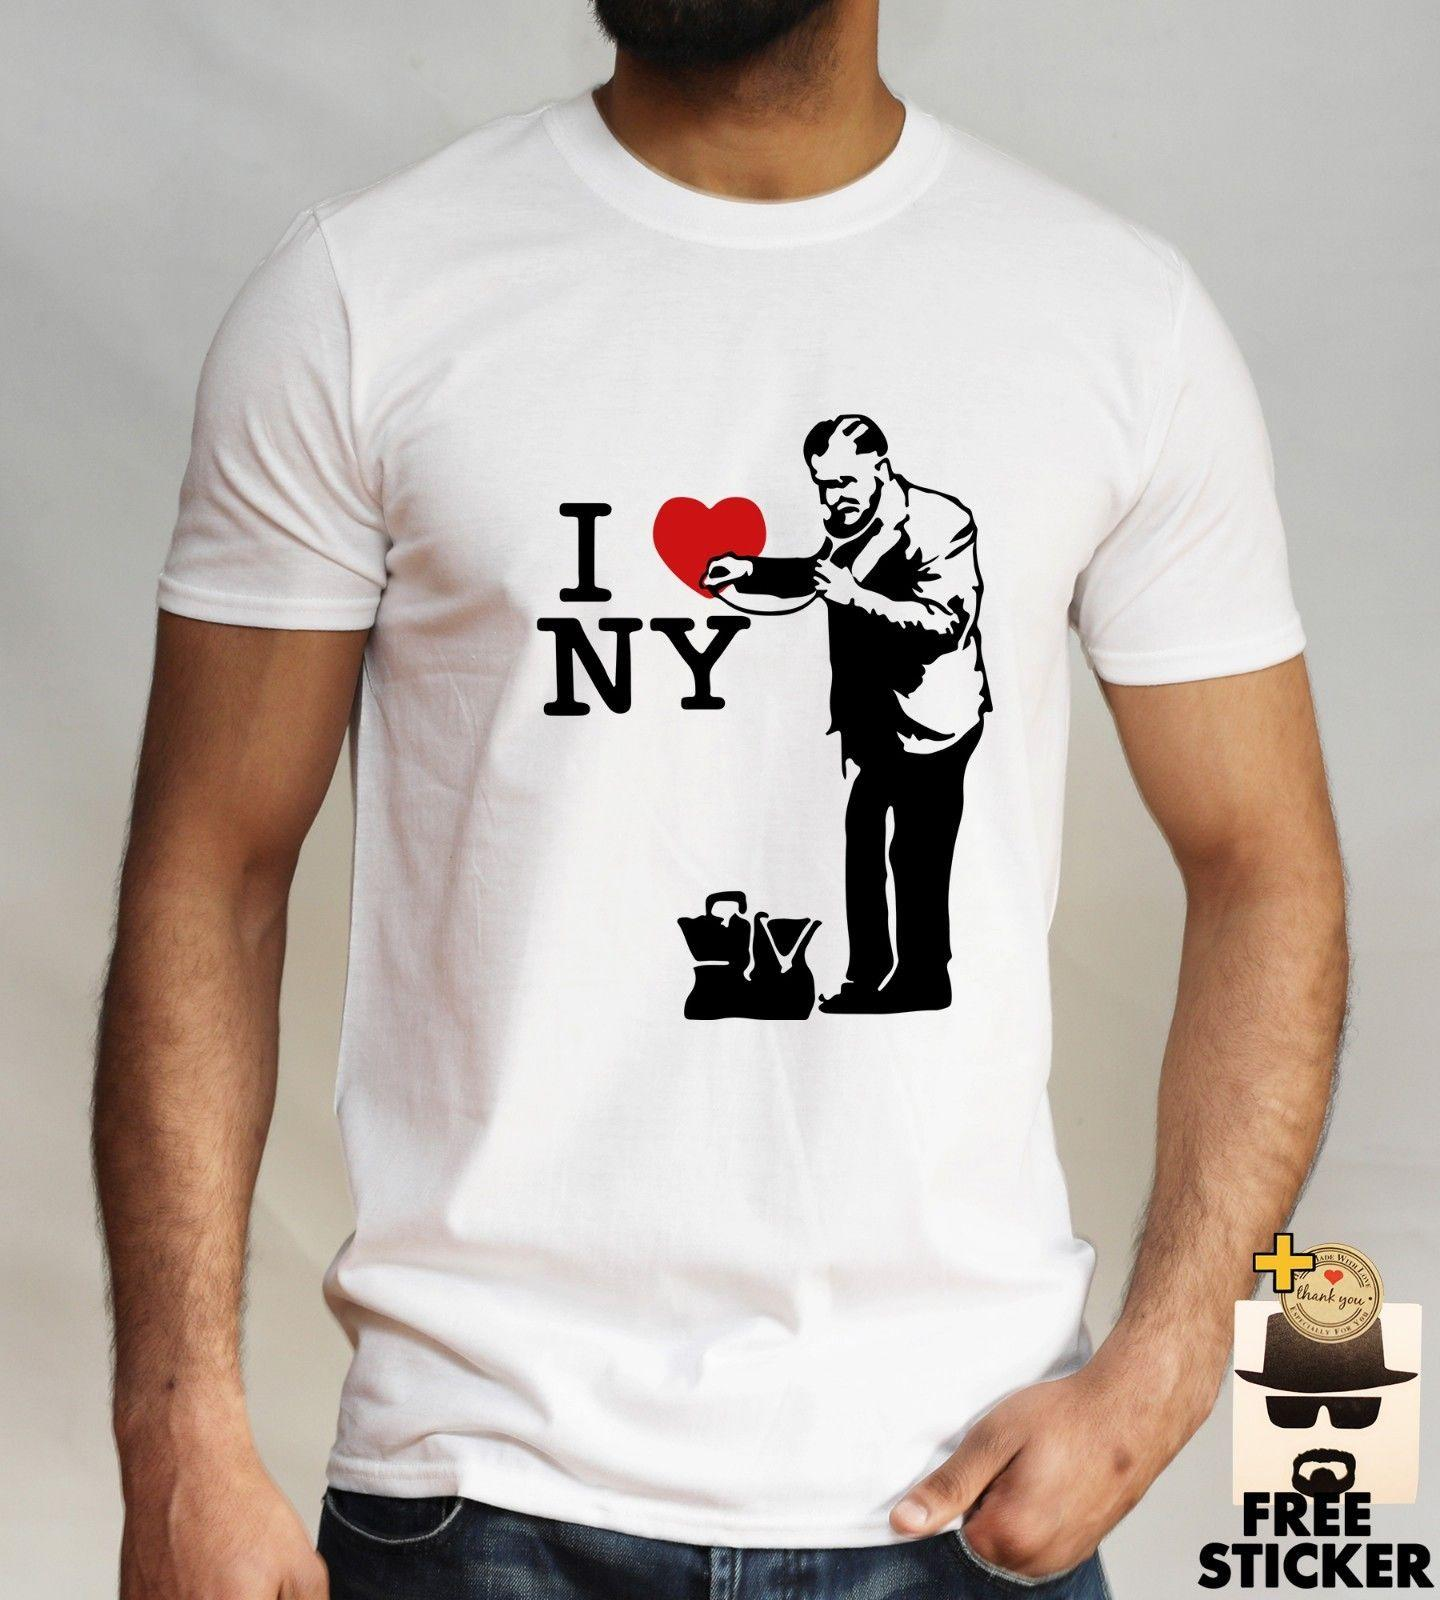 Banksy Grafitti Art T Shirt I Love New York Political Expression Retro Men  Women Funny Unisex Casual Tee Gift Moto Shirts Tee T Shirts From  Tee spirit ae00ca1dbd4